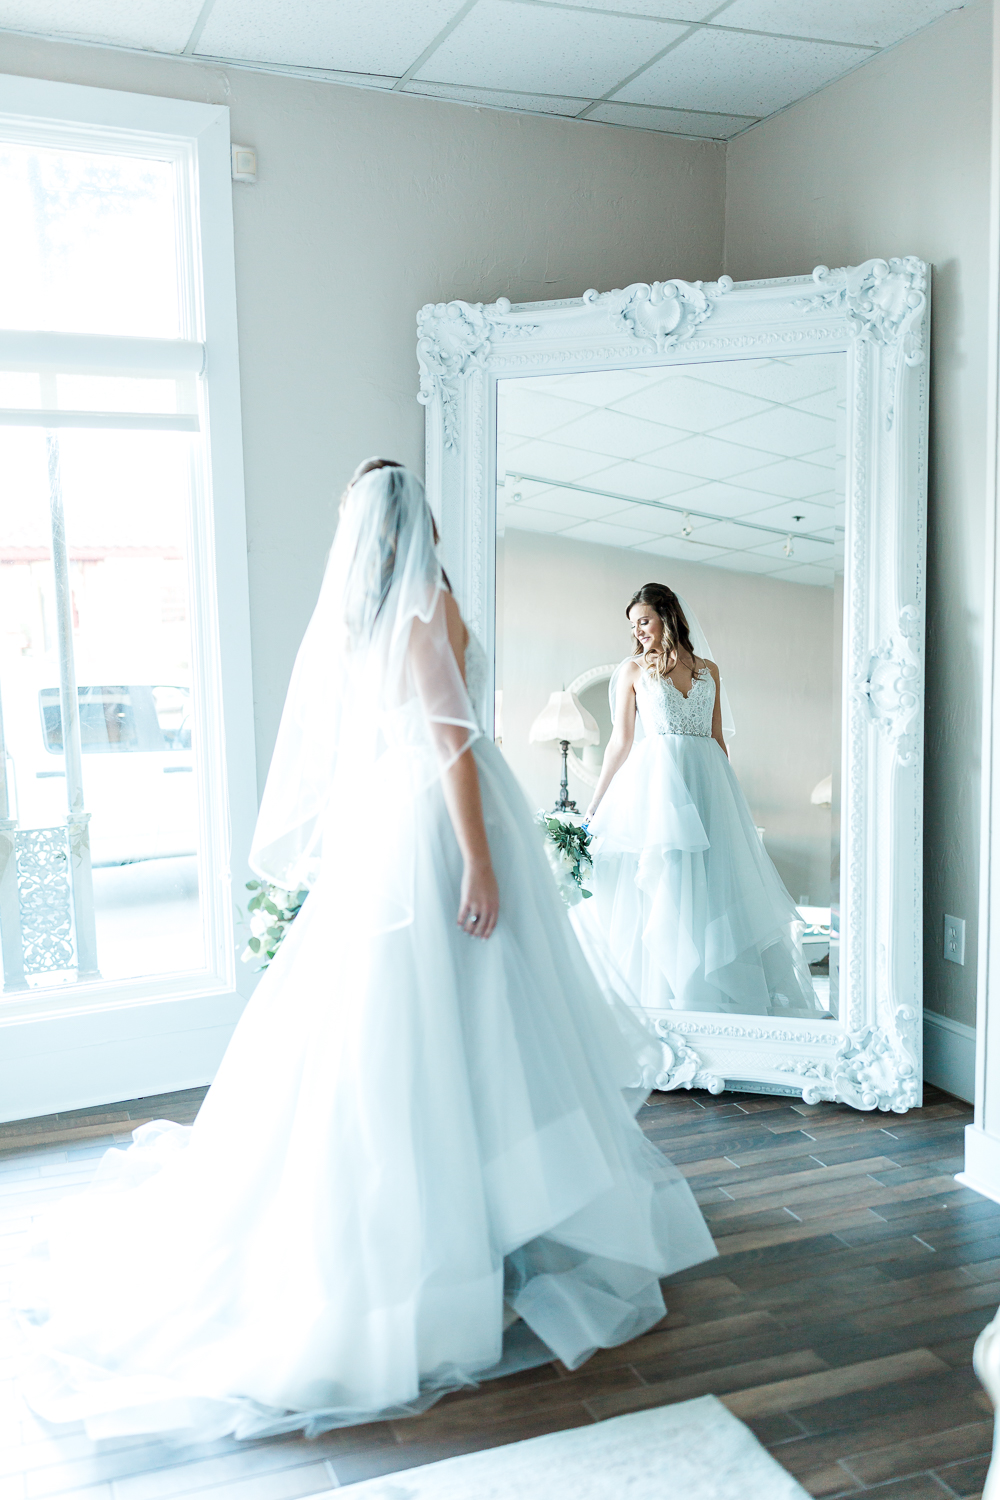 Bride in The White room's bridal suite